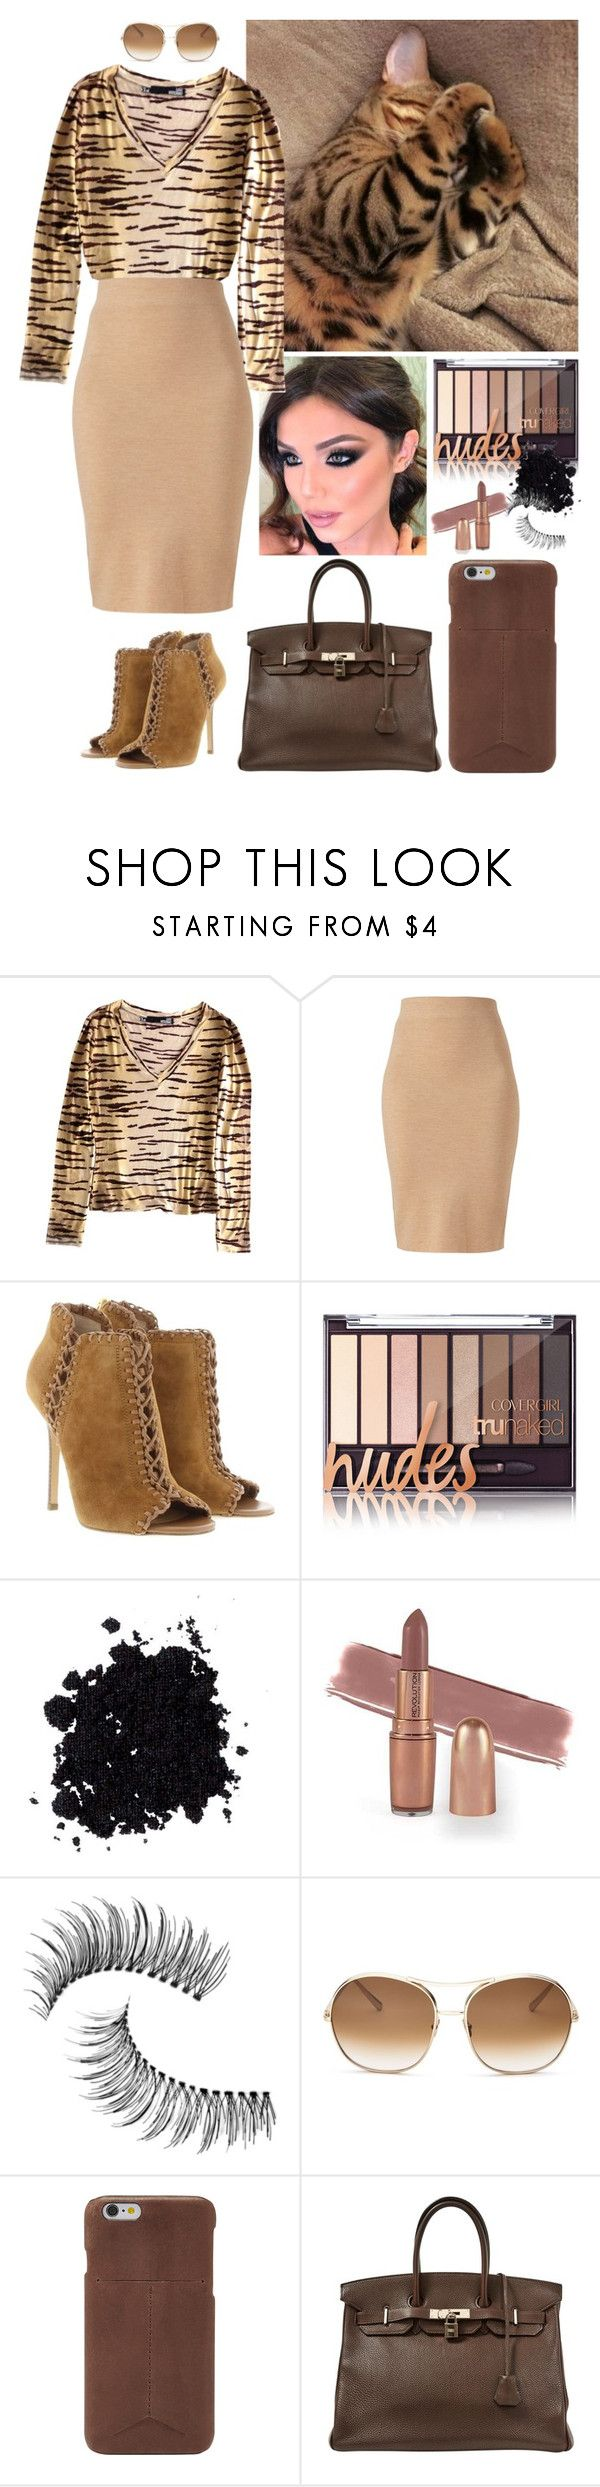 """Animal Inspired!"" by annacastrolima ❤ liked on Polyvore featuring GET LOST, Winser London, Michael Kors, Trish McEvoy, Chloé, FOSSIL and Hermès"